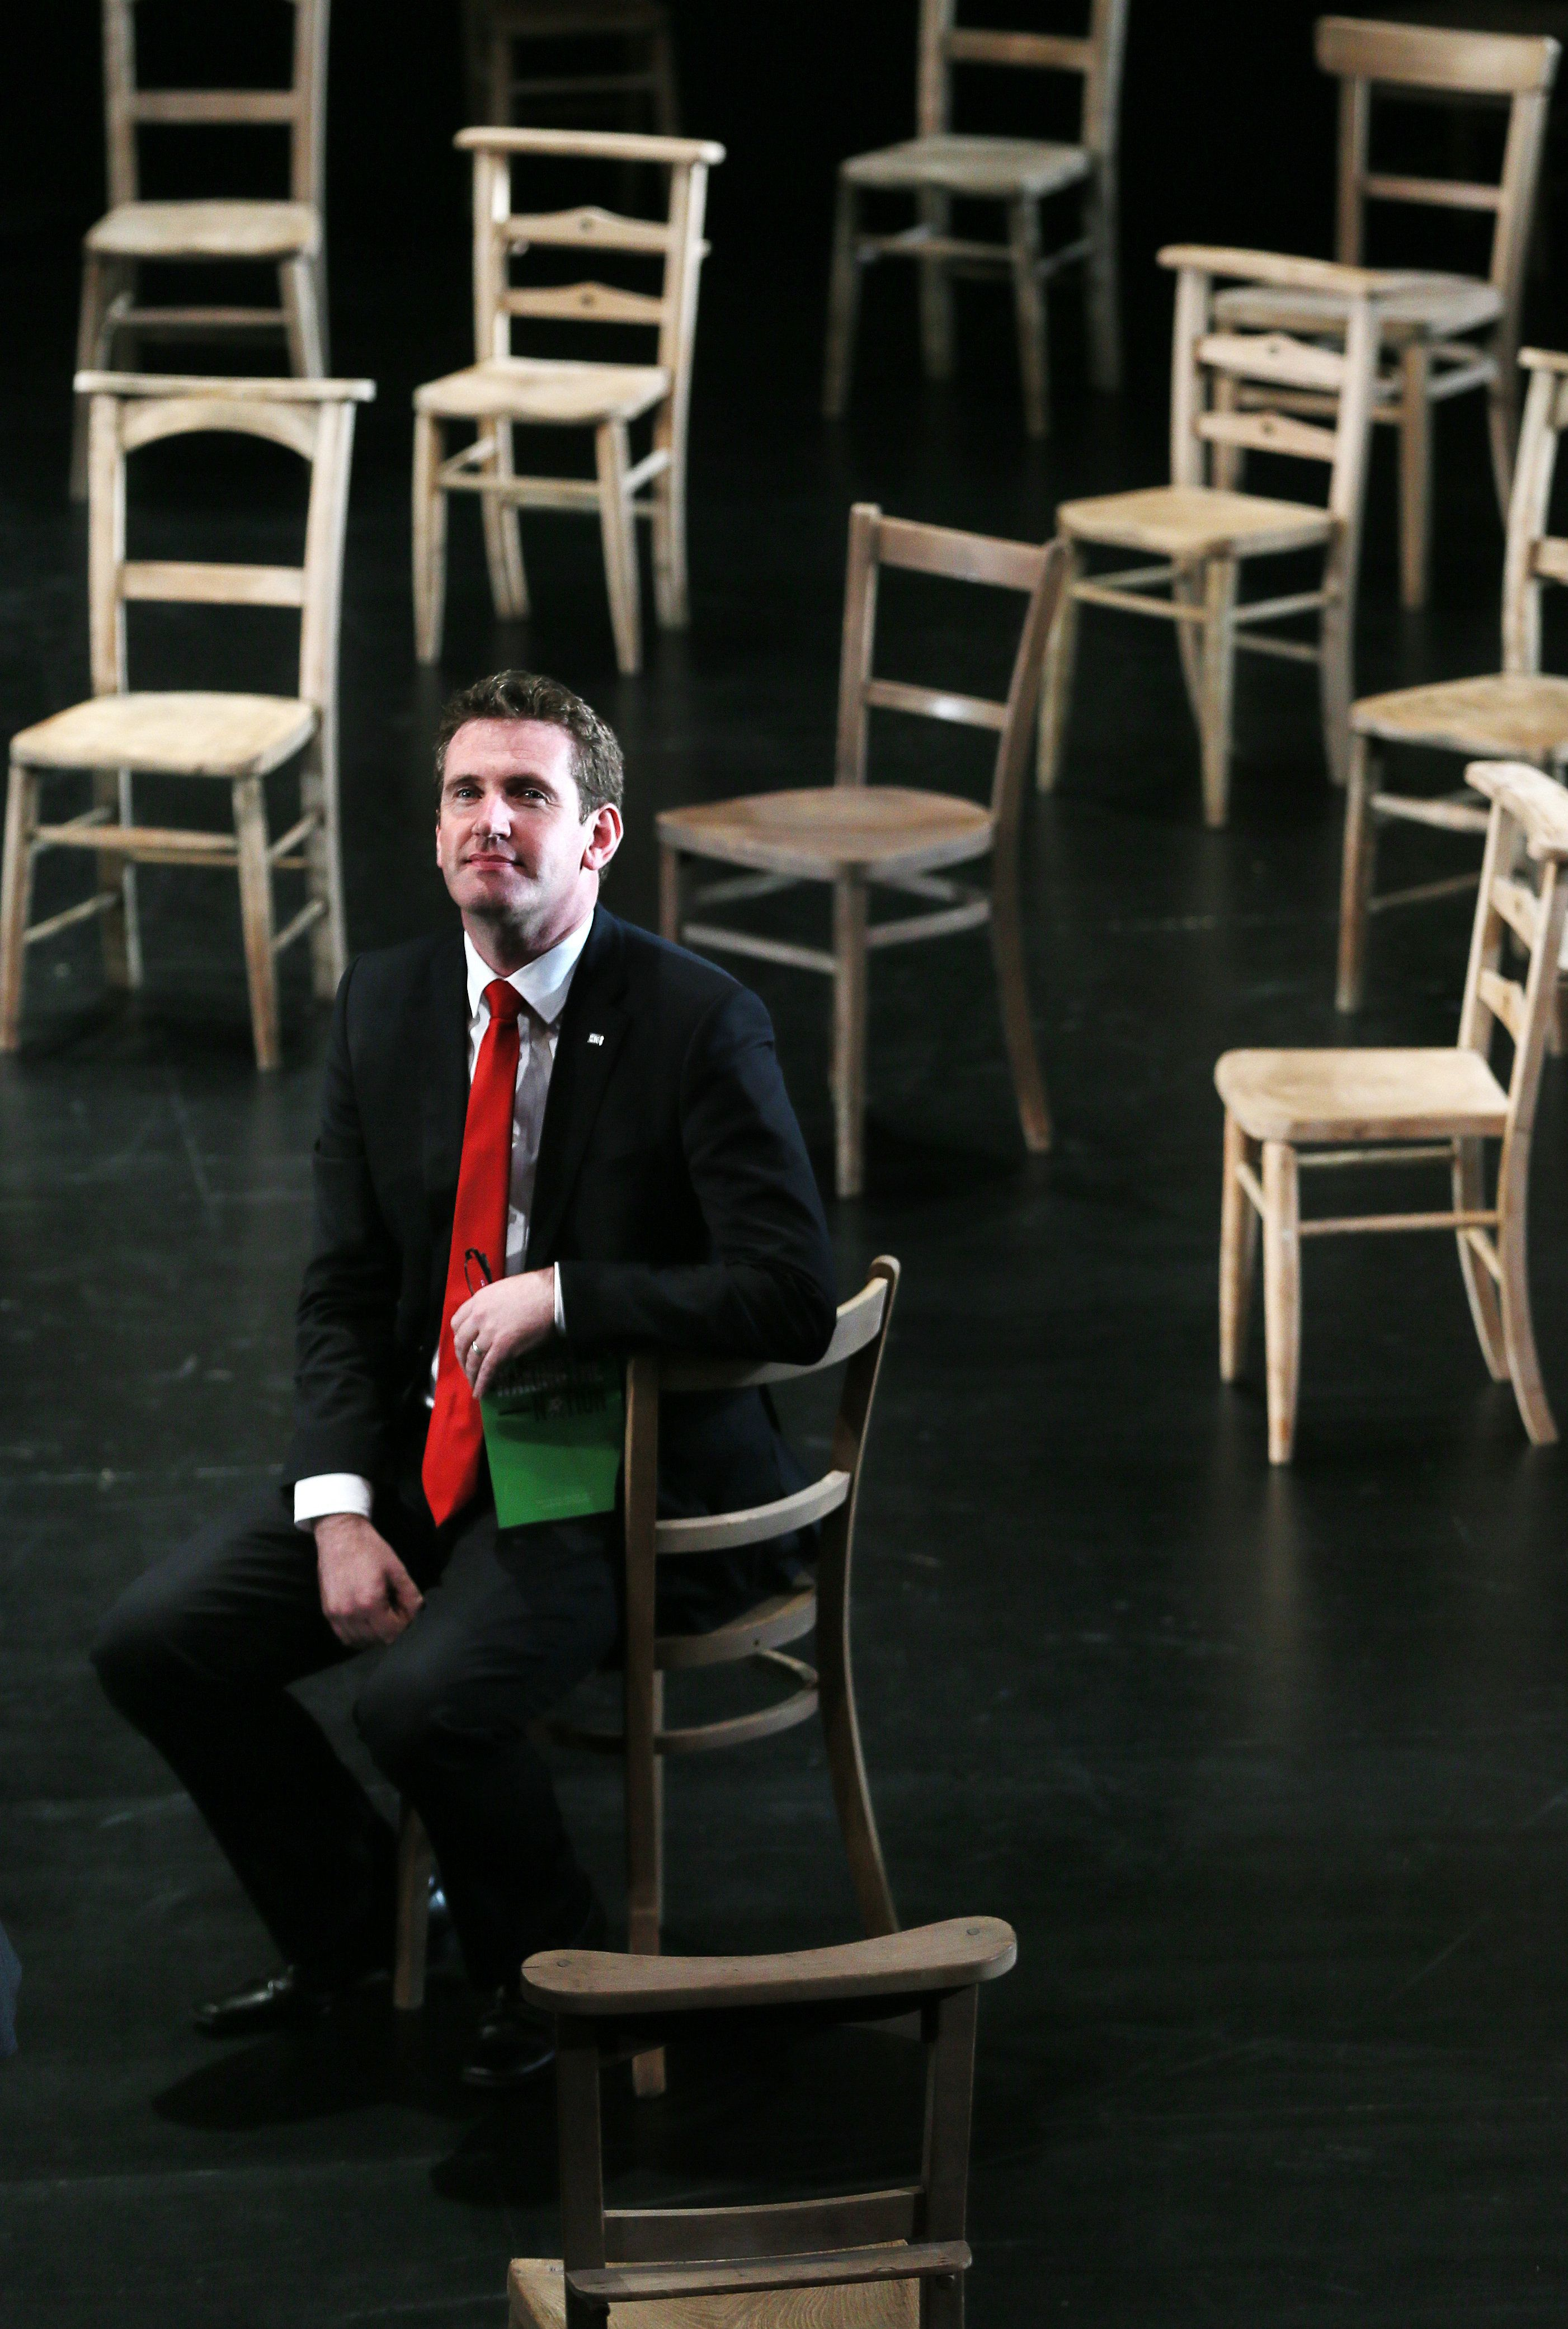 Minister of State for the Arts Aodhan O Riordain sits on the set of Oedipus during a photocall at the launch of Dublin's Abbey Theatre's 2016 programme of events.